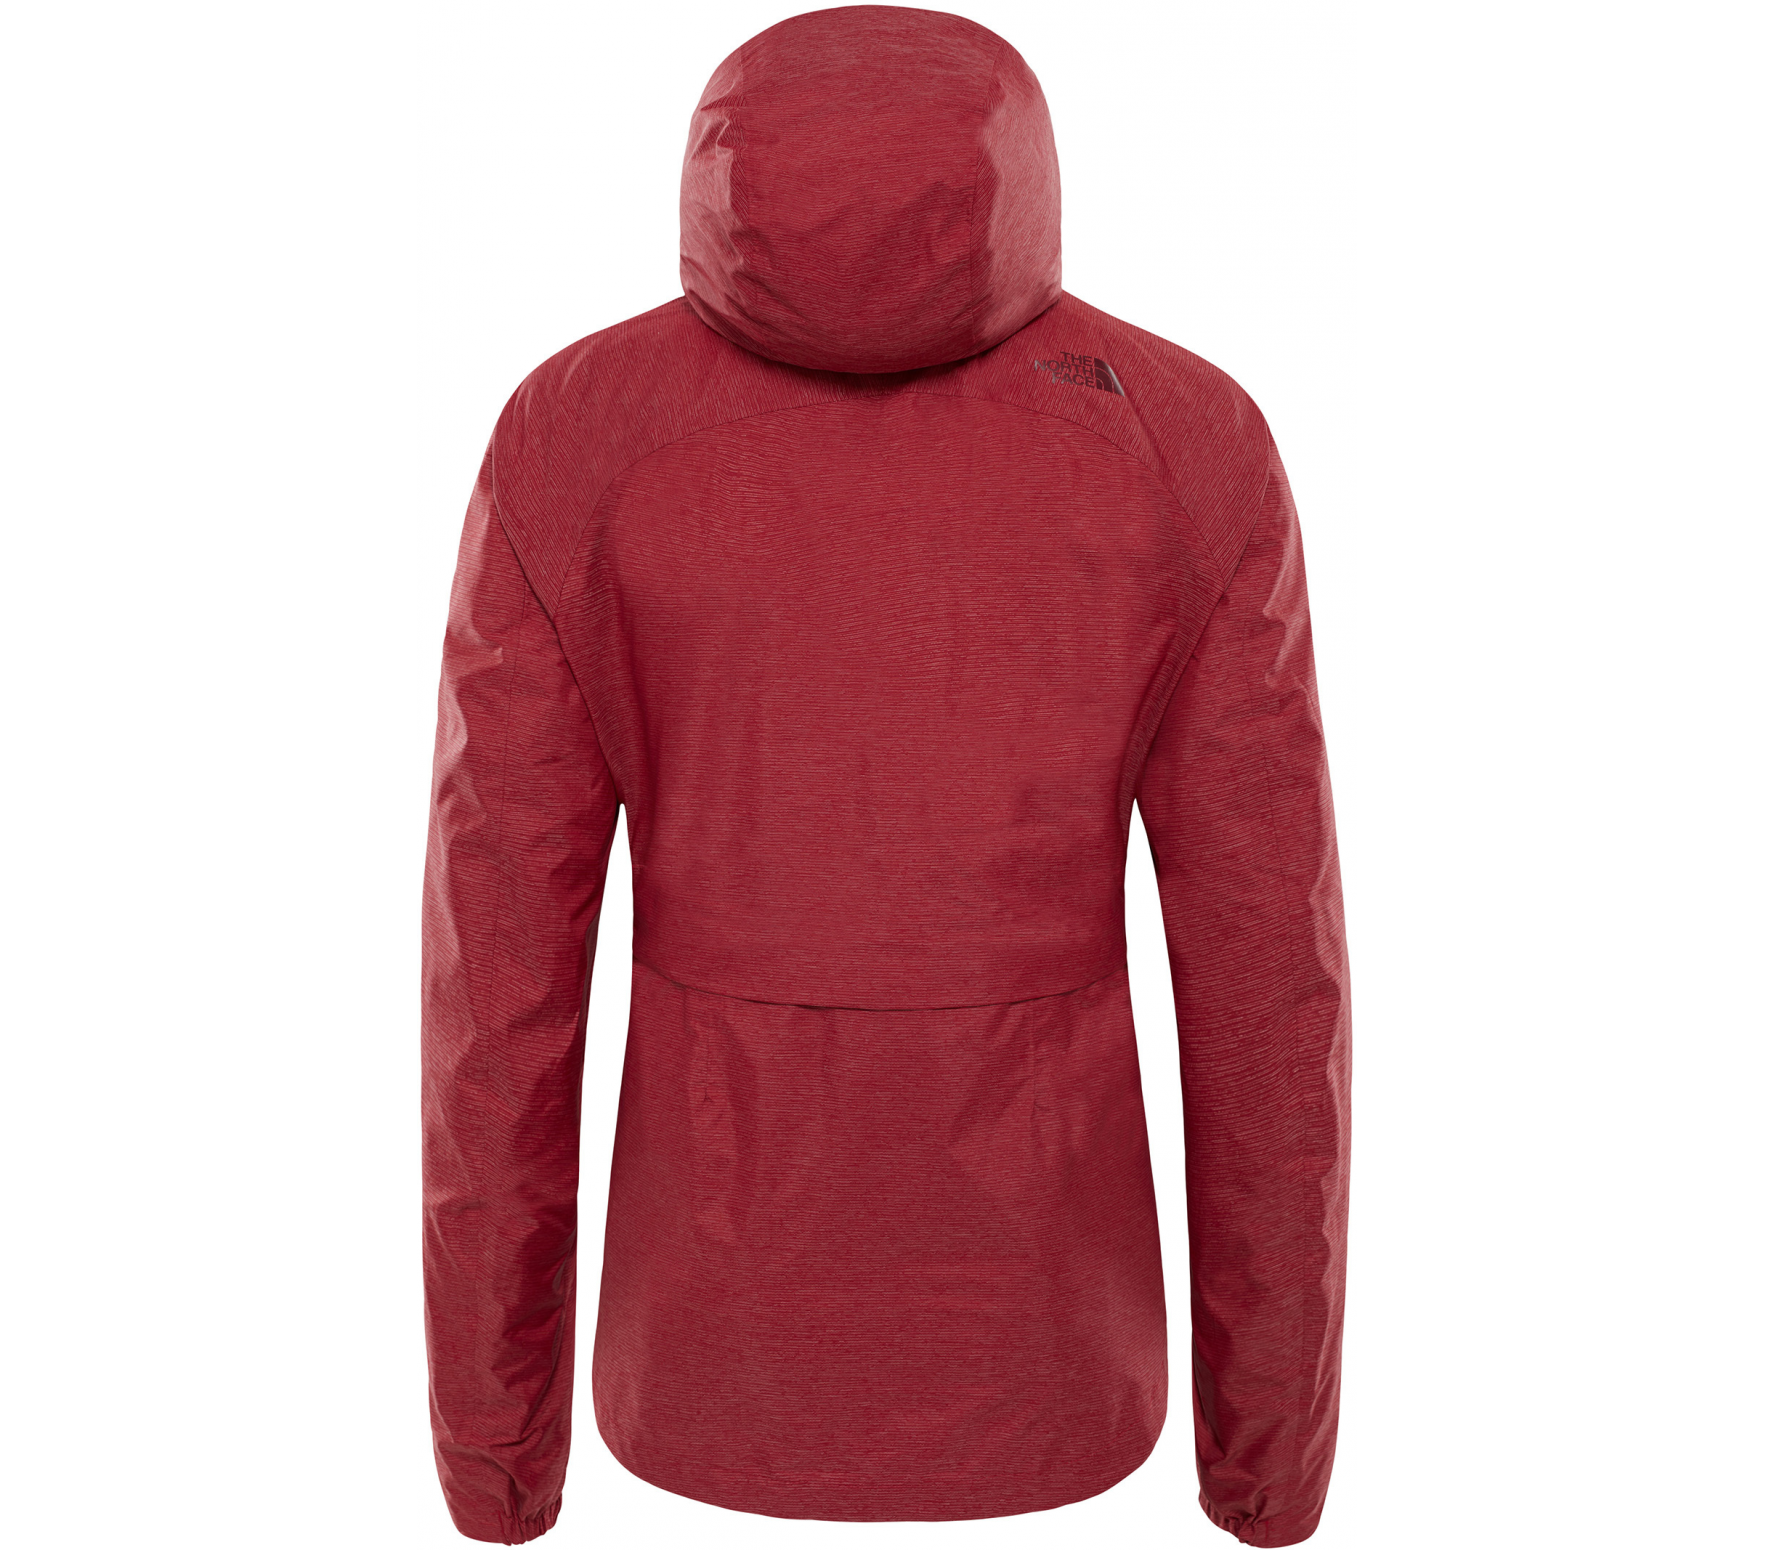 9d598dbdc The North Face - Inlux Dryvent women's outdoor jacket (red)